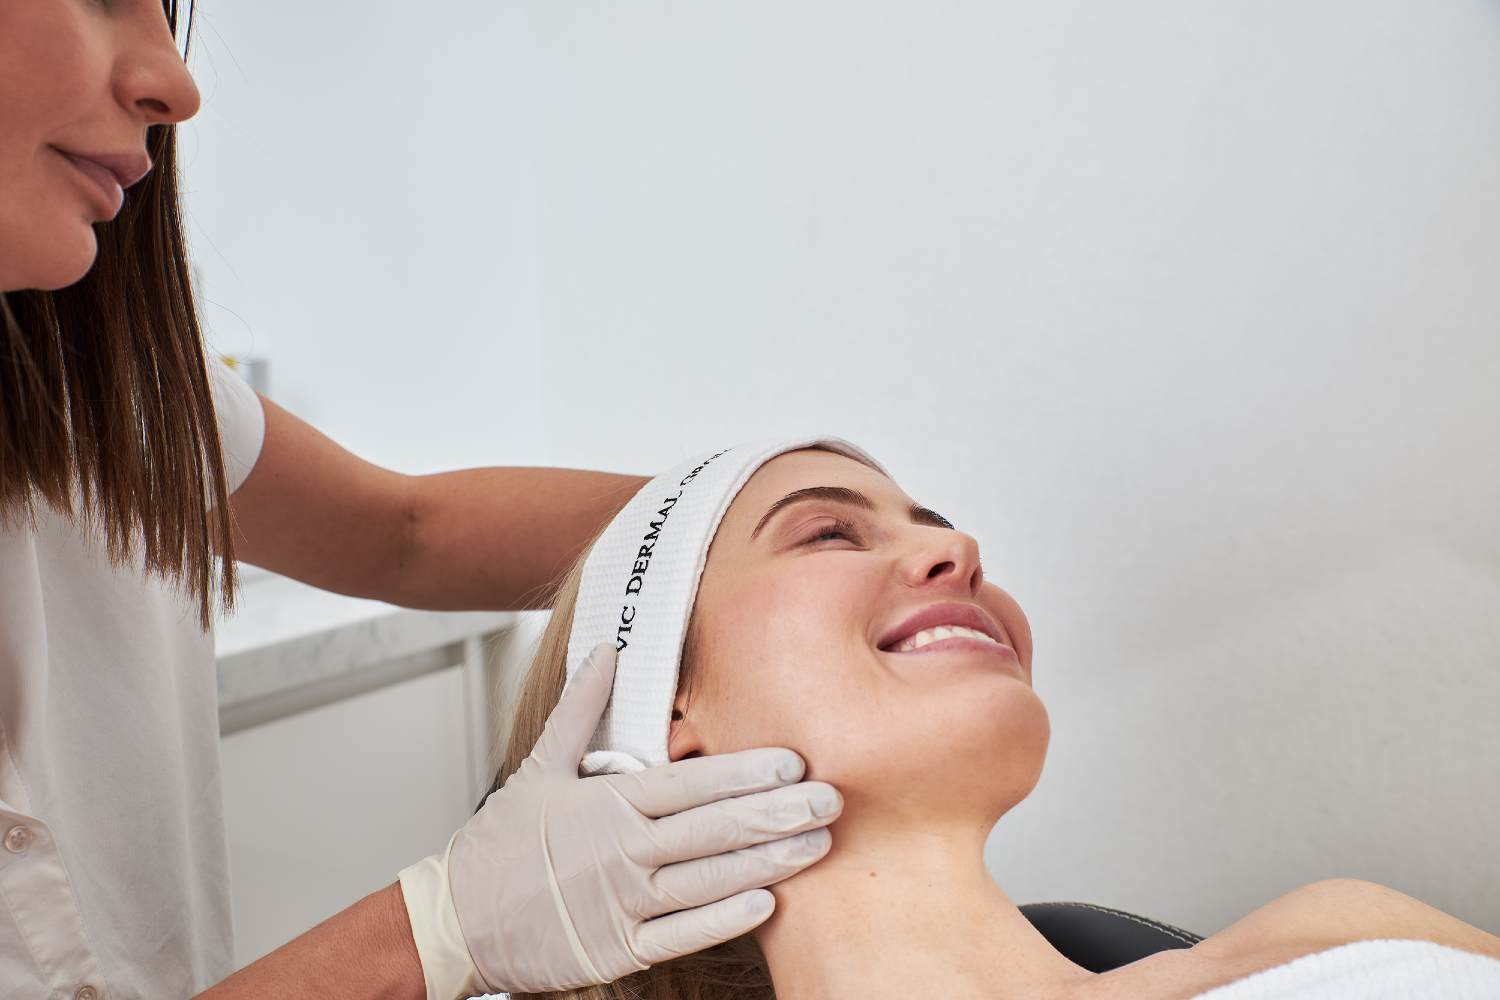 women getting a chemical peel treatment administered